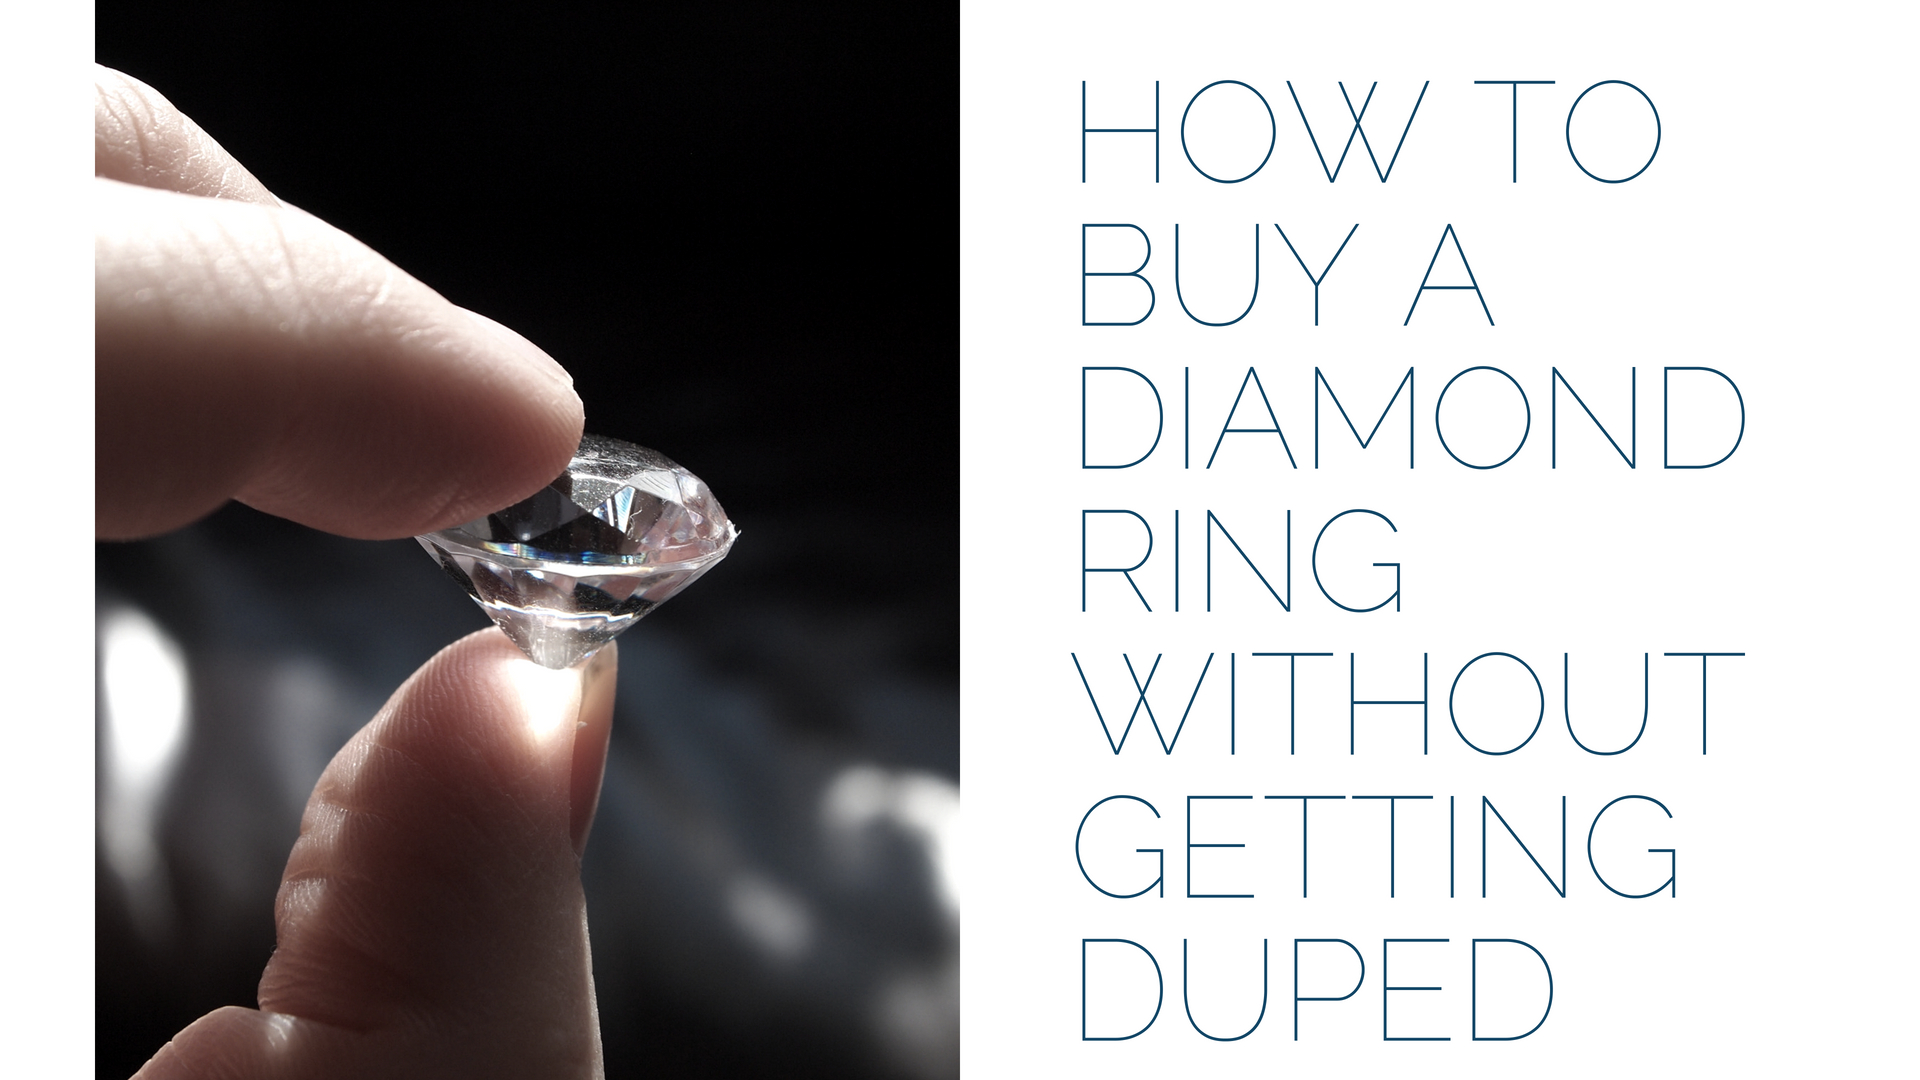 How to Buy a Diamond Ring without getting duped